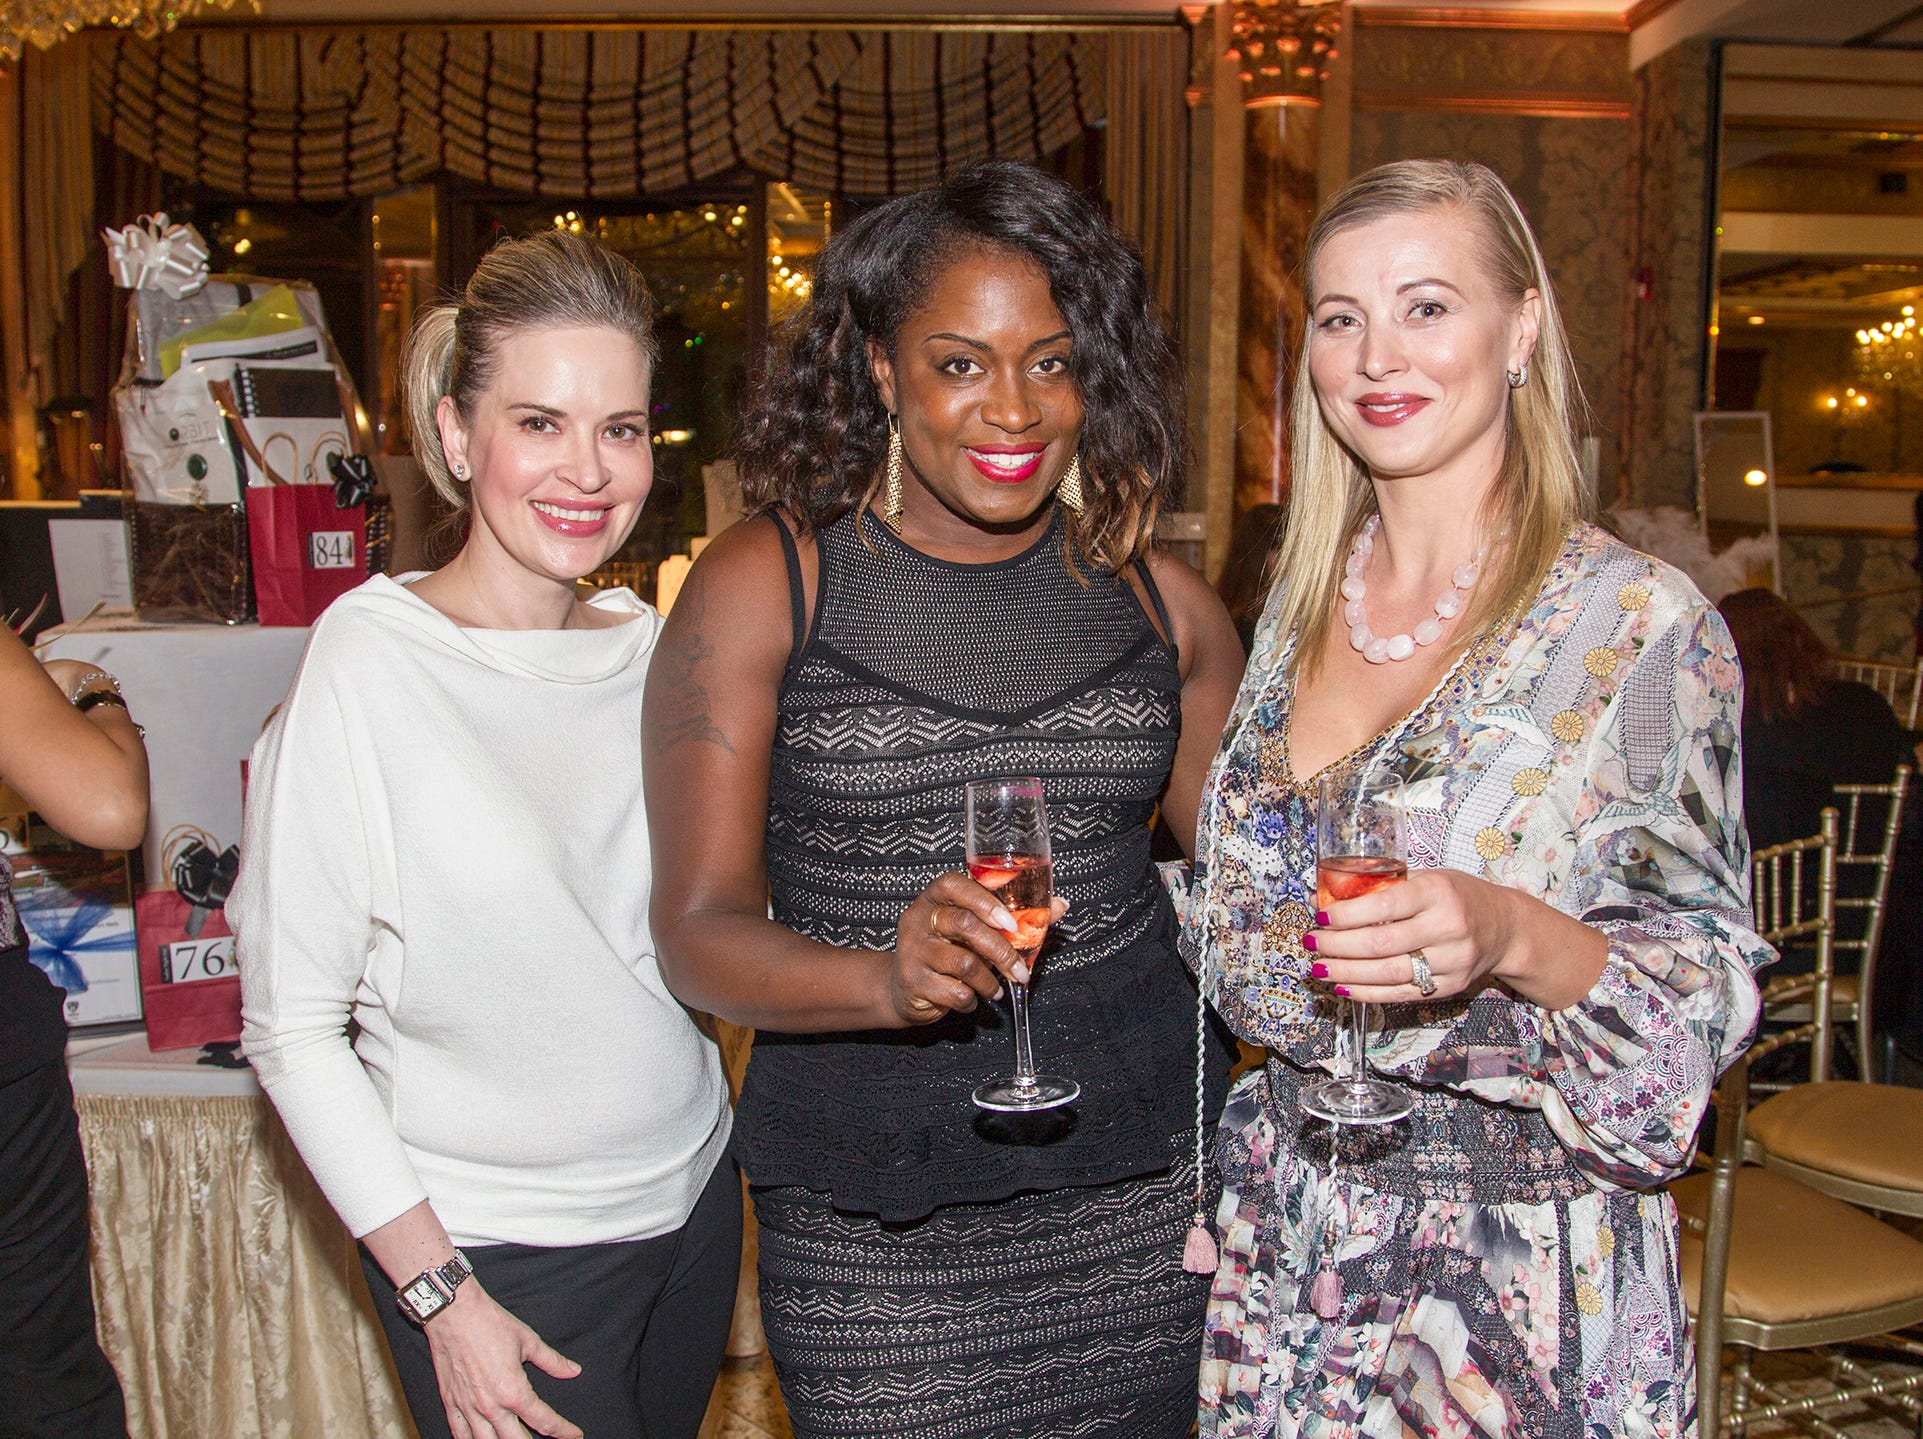 Nicole Gnudi, Merylin Mitchell, Beata Savreski. Saddle River Day School sponsors Ladies Night Out at Seasons in Washington Twp.  11/01/2018